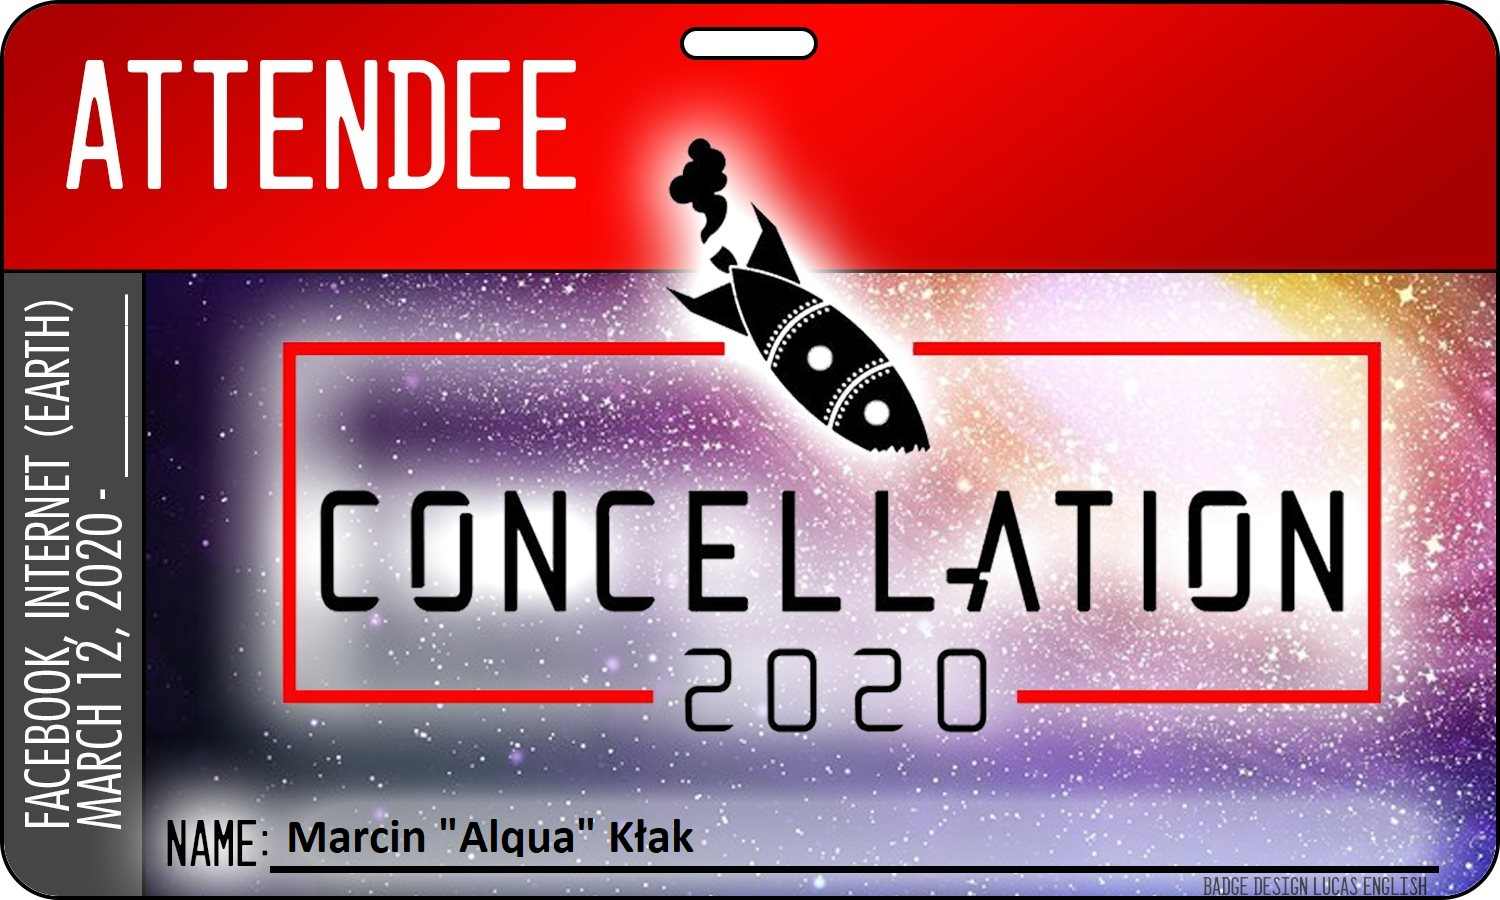 Convention badge with the Concellation 2020 name and a logo of broken rocket.